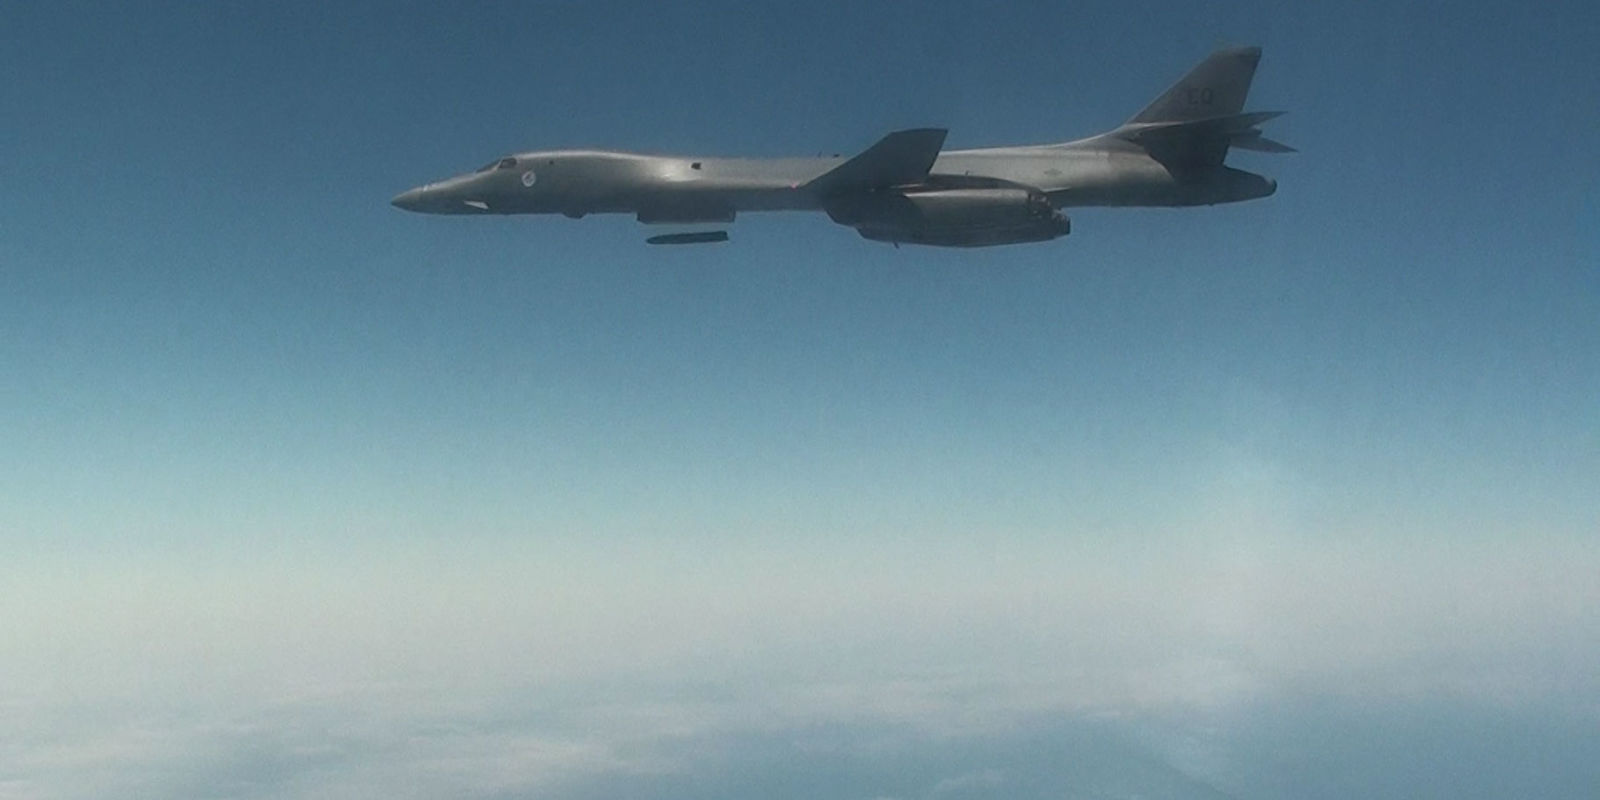 The B-1 Bomber Has a New Mission